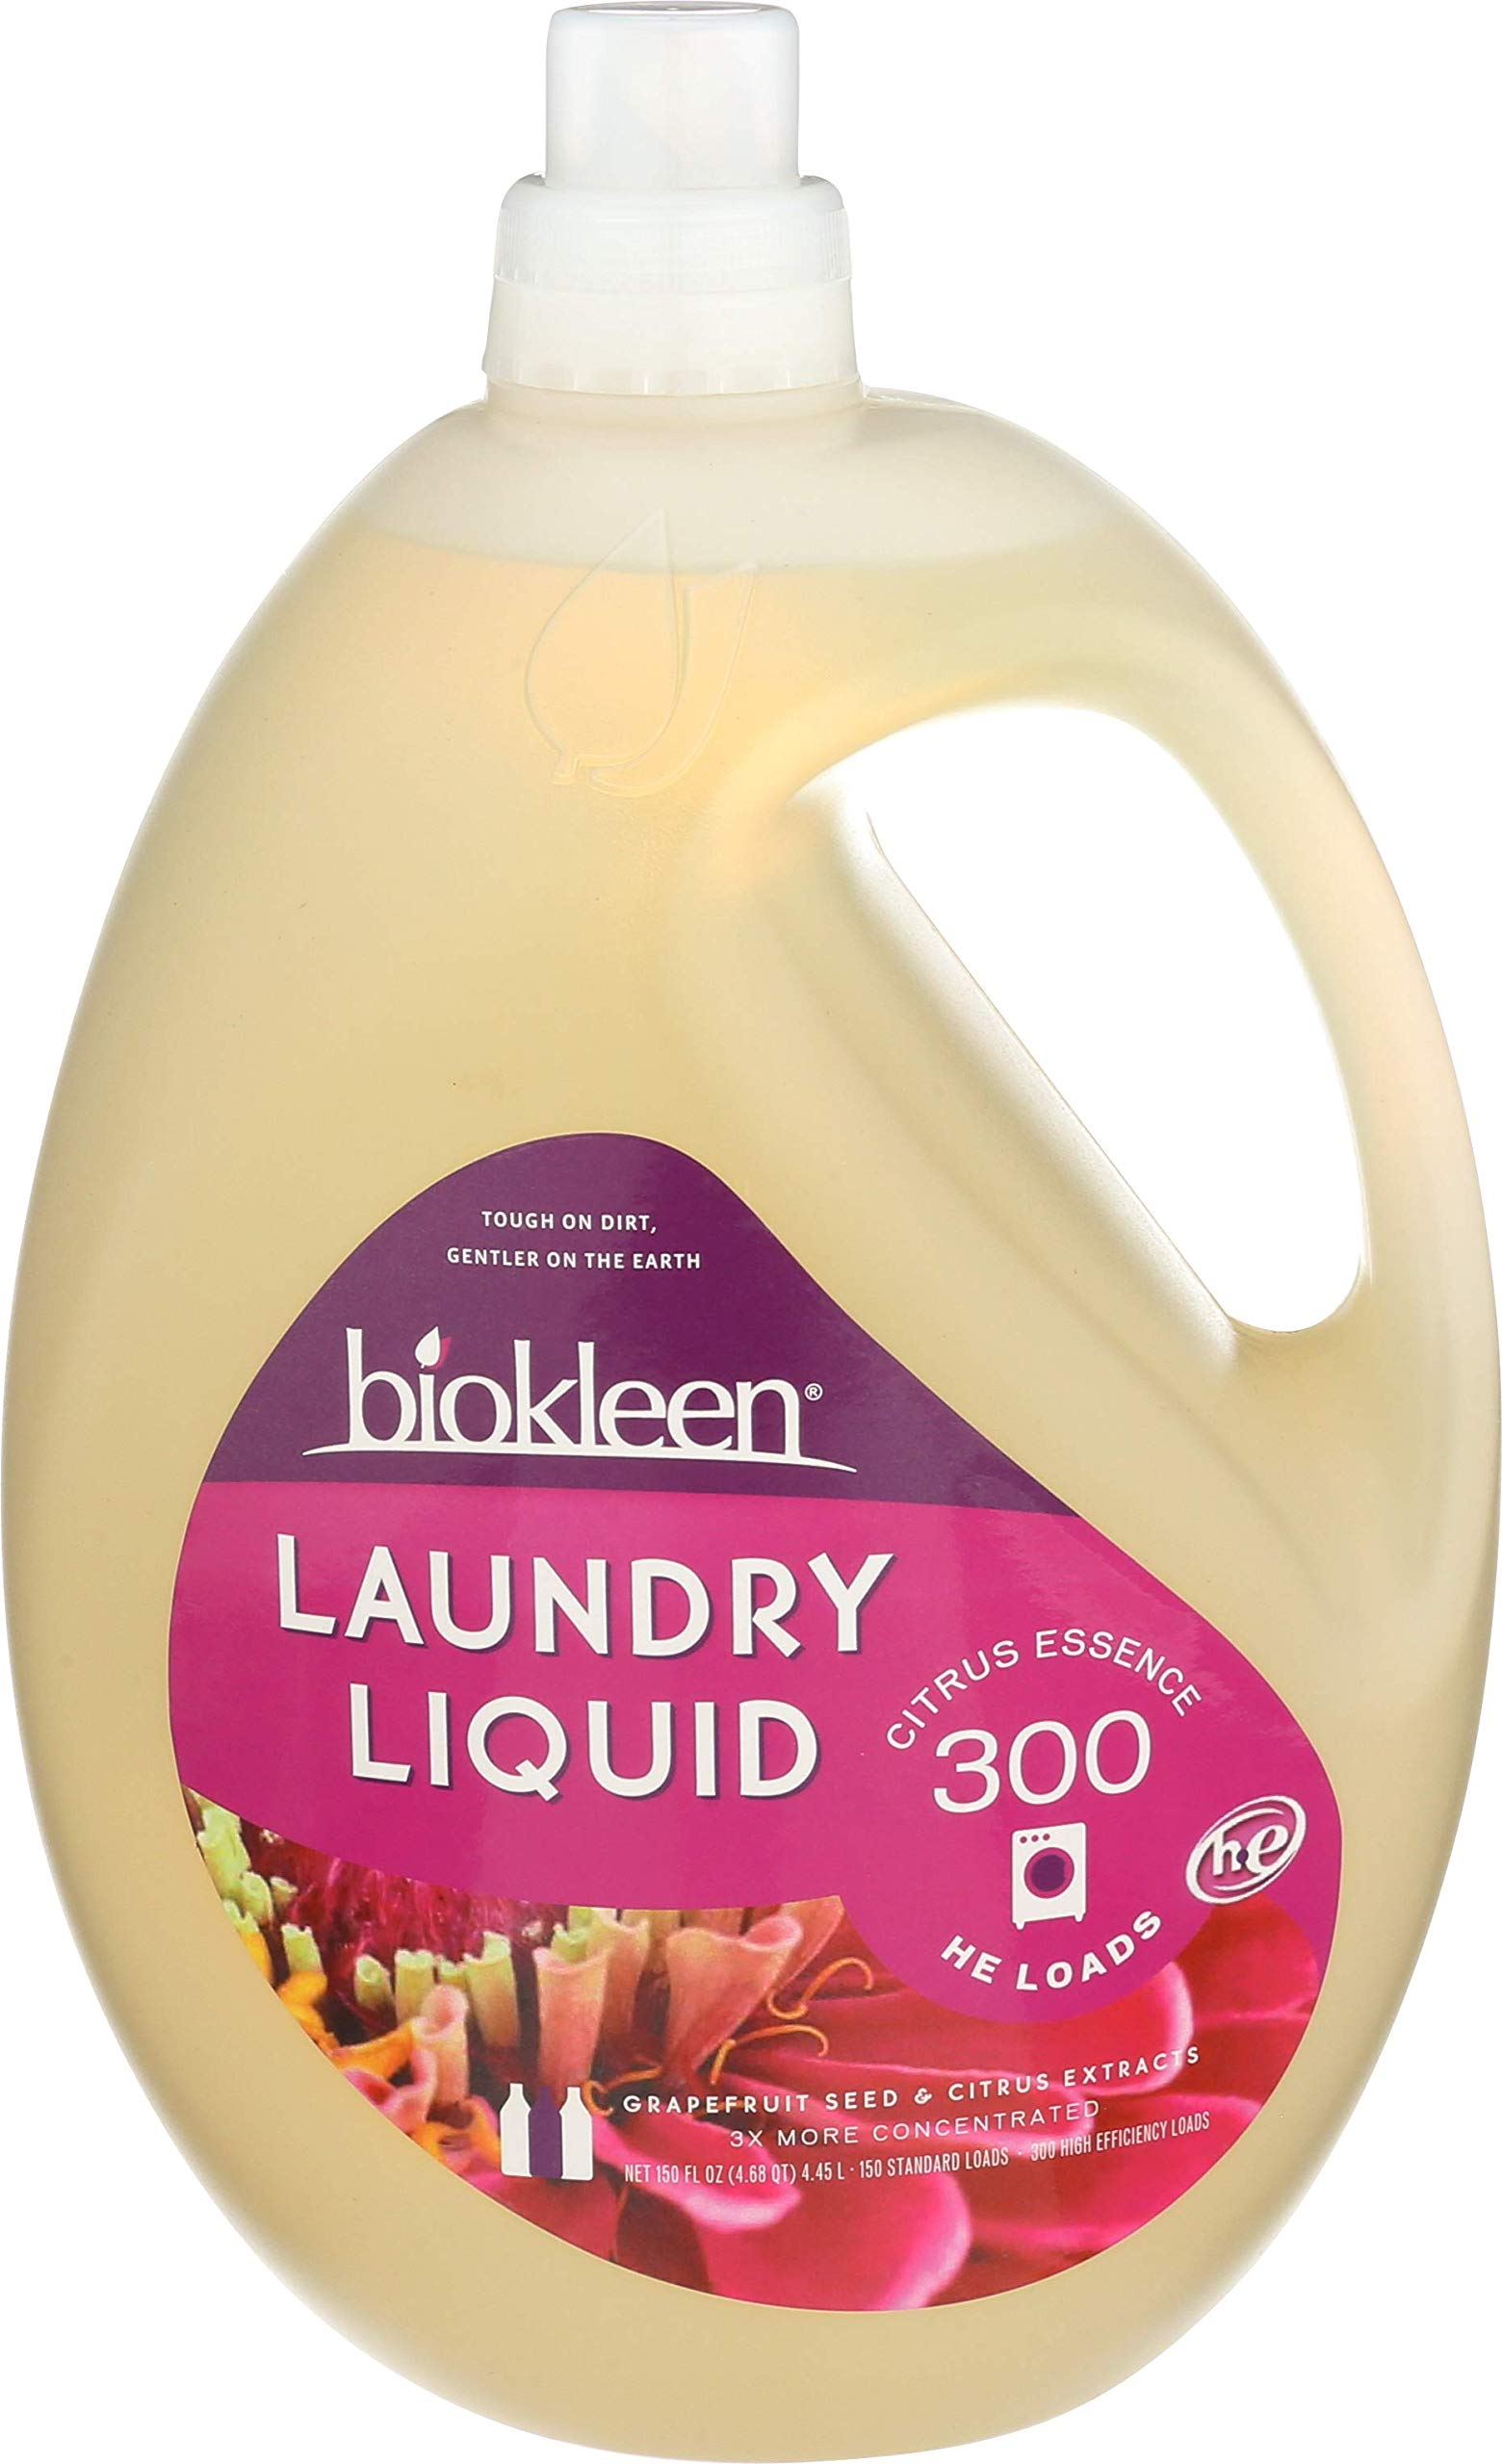 Biokleen Laundry Detergent Liquid, Concentrated, Eco-Friendly, Non-Toxic, Plant-Based, No Artificial Fragrance, Colors or Preservatives, Citrus Essence, 150 Ounces - 300 HE Loads/150 Standard Loads by Biokleen